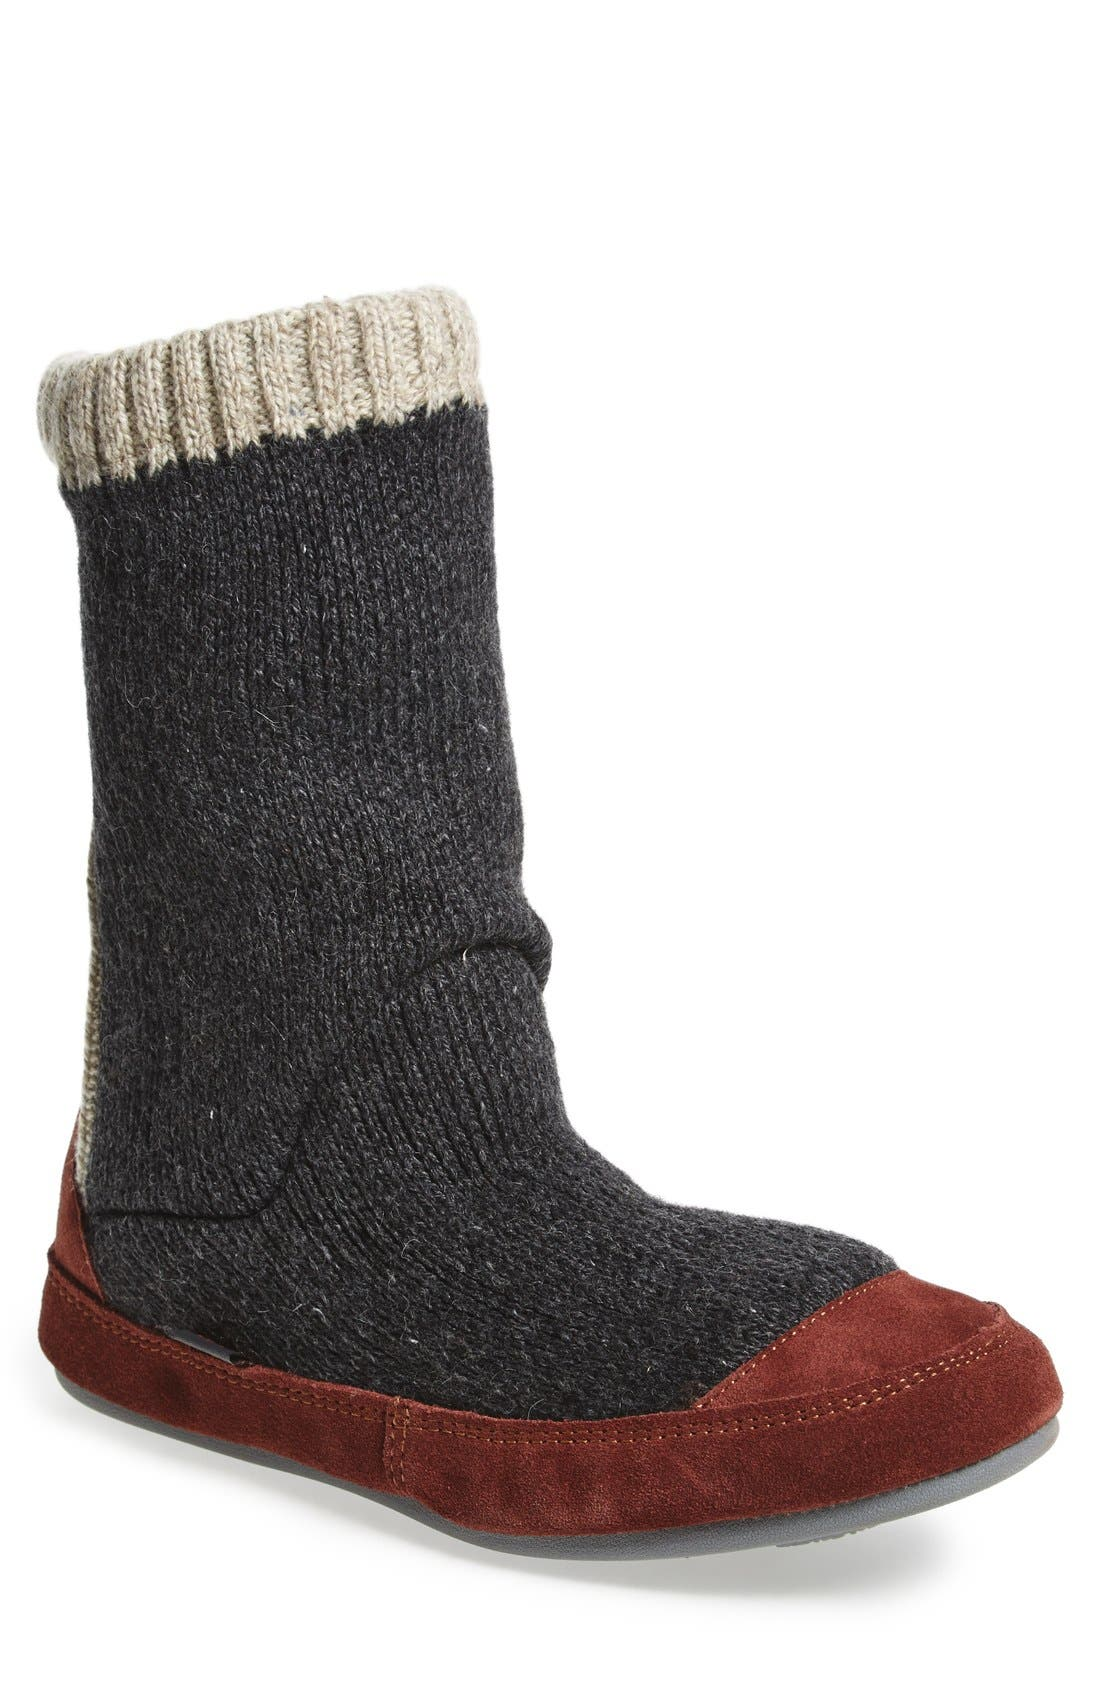 'Slouch Boot' Slipper,                         Main,                         color, CHARCOAL RAGG WOOL